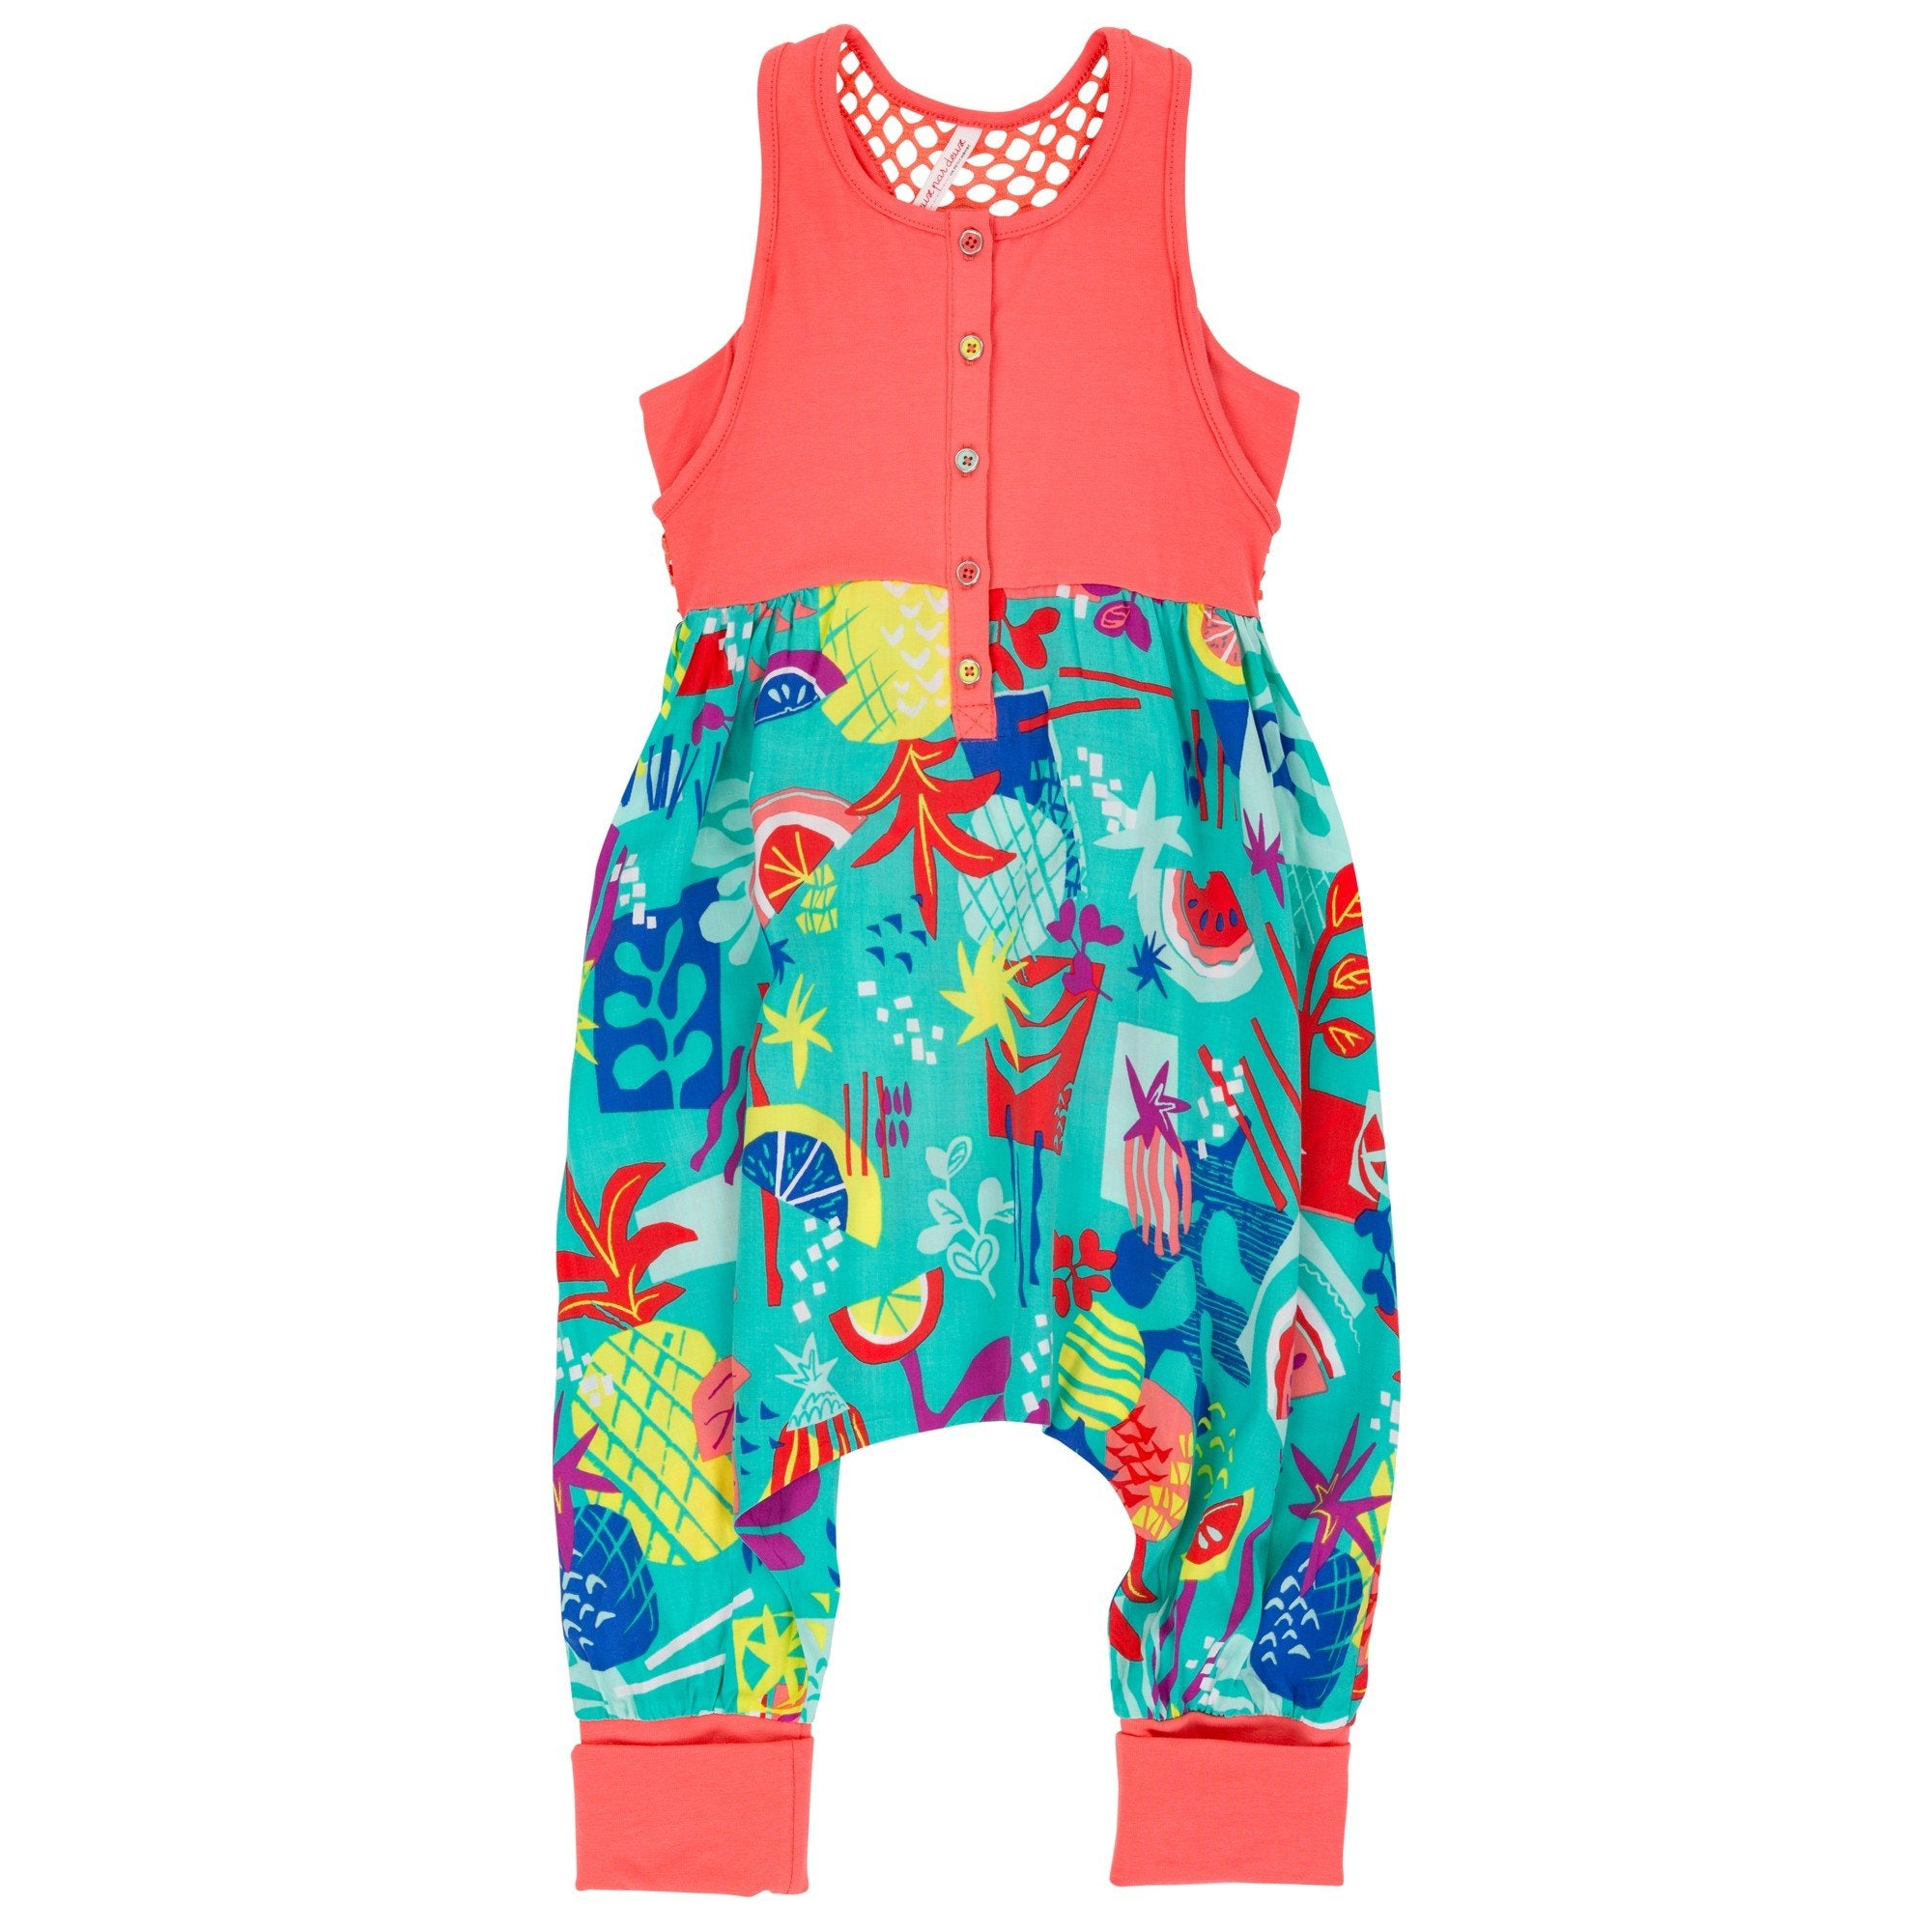 8438a23ca4 Girls Playsuits and Rompers - Geoffrey and Joy